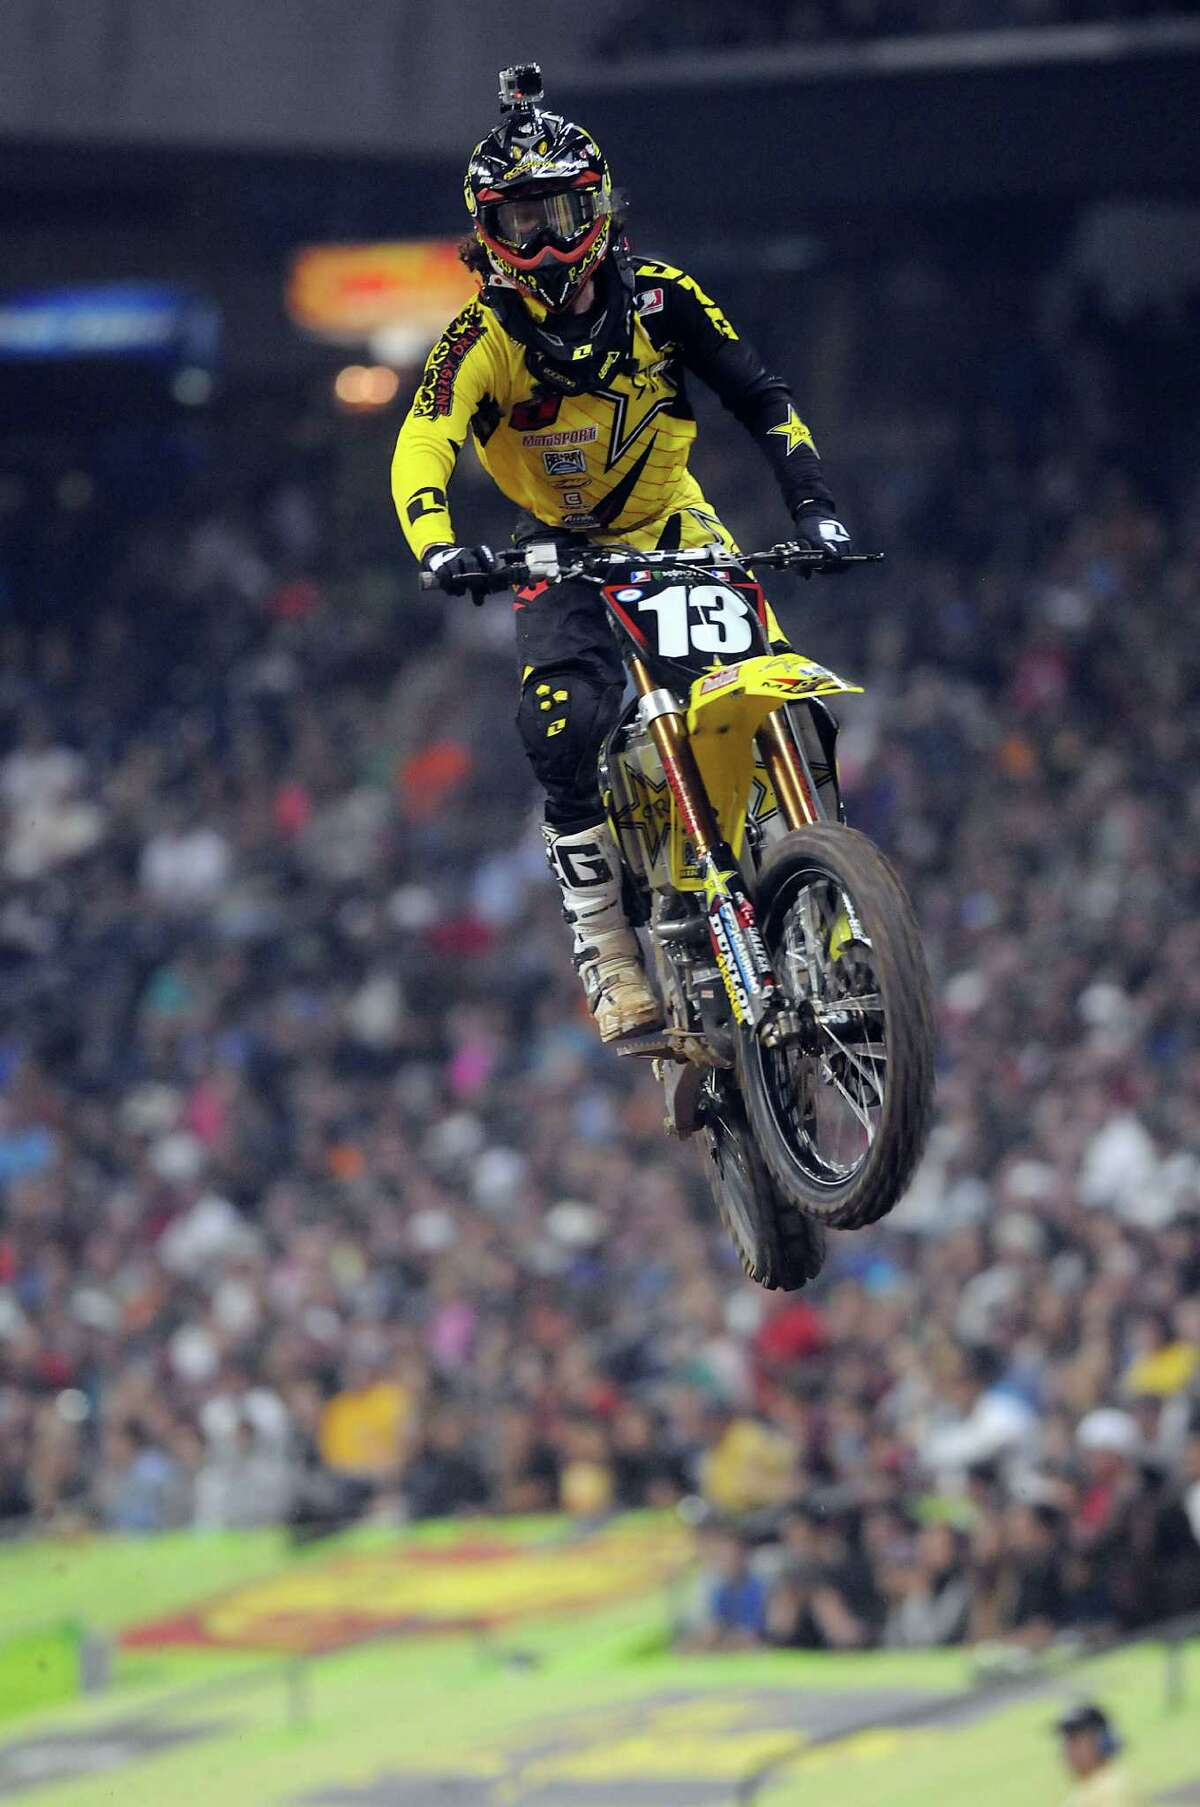 Blake Wharton, who was born in Houston, rides to victory in the 250SX championship at Reliant Stadium to give him his first win of the season.